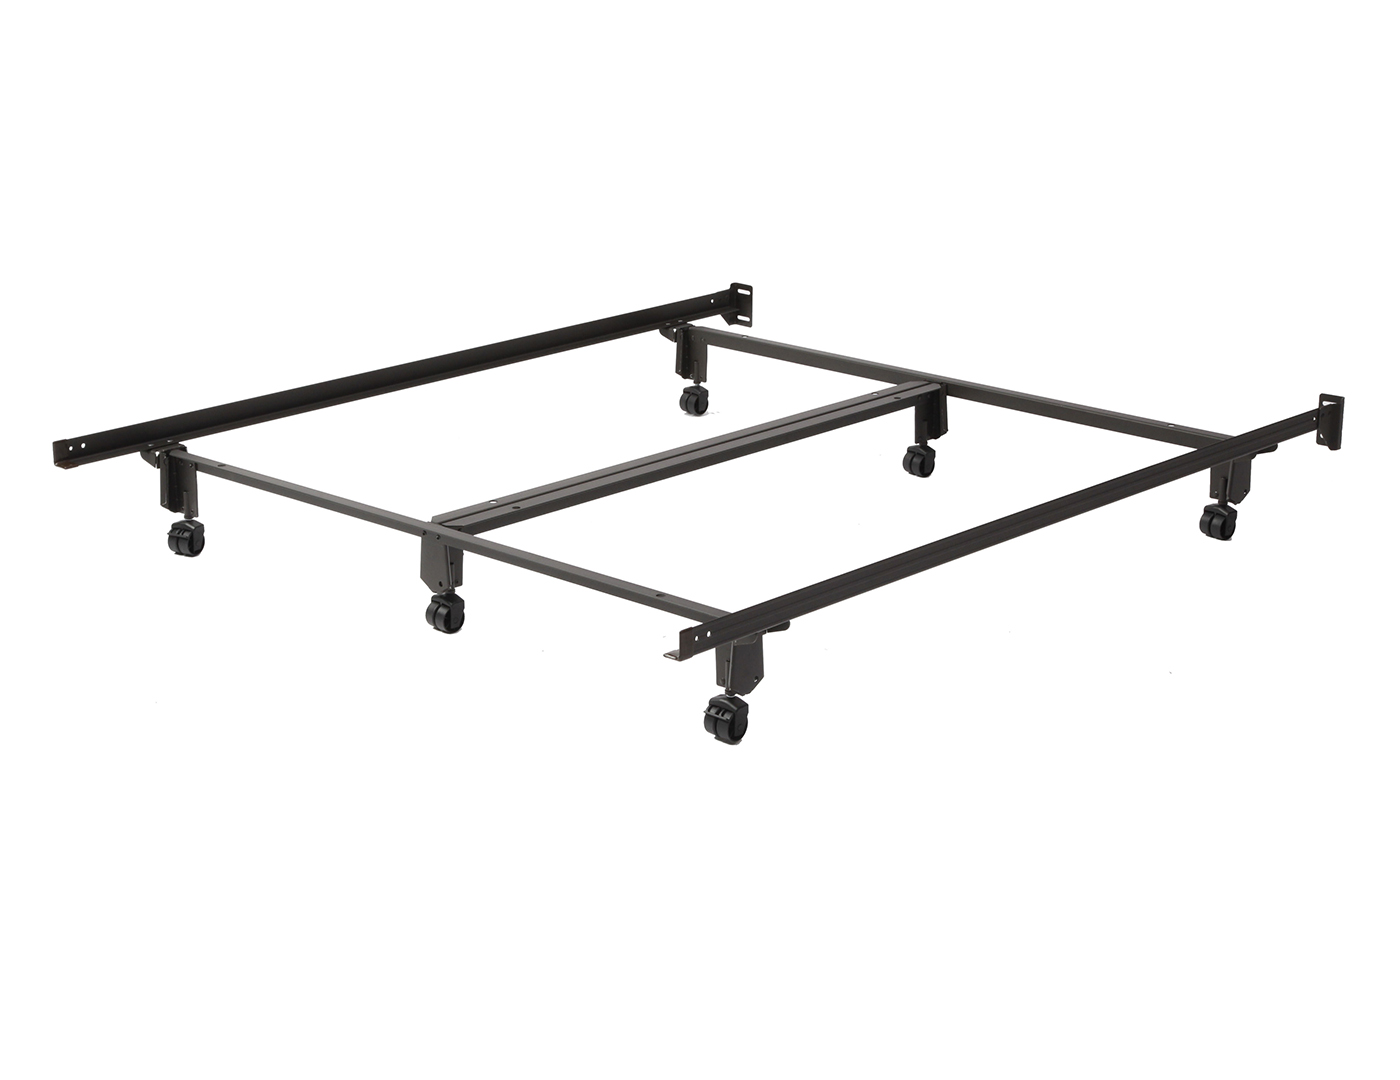 Craftlock Premium Cal. King Bed Frame